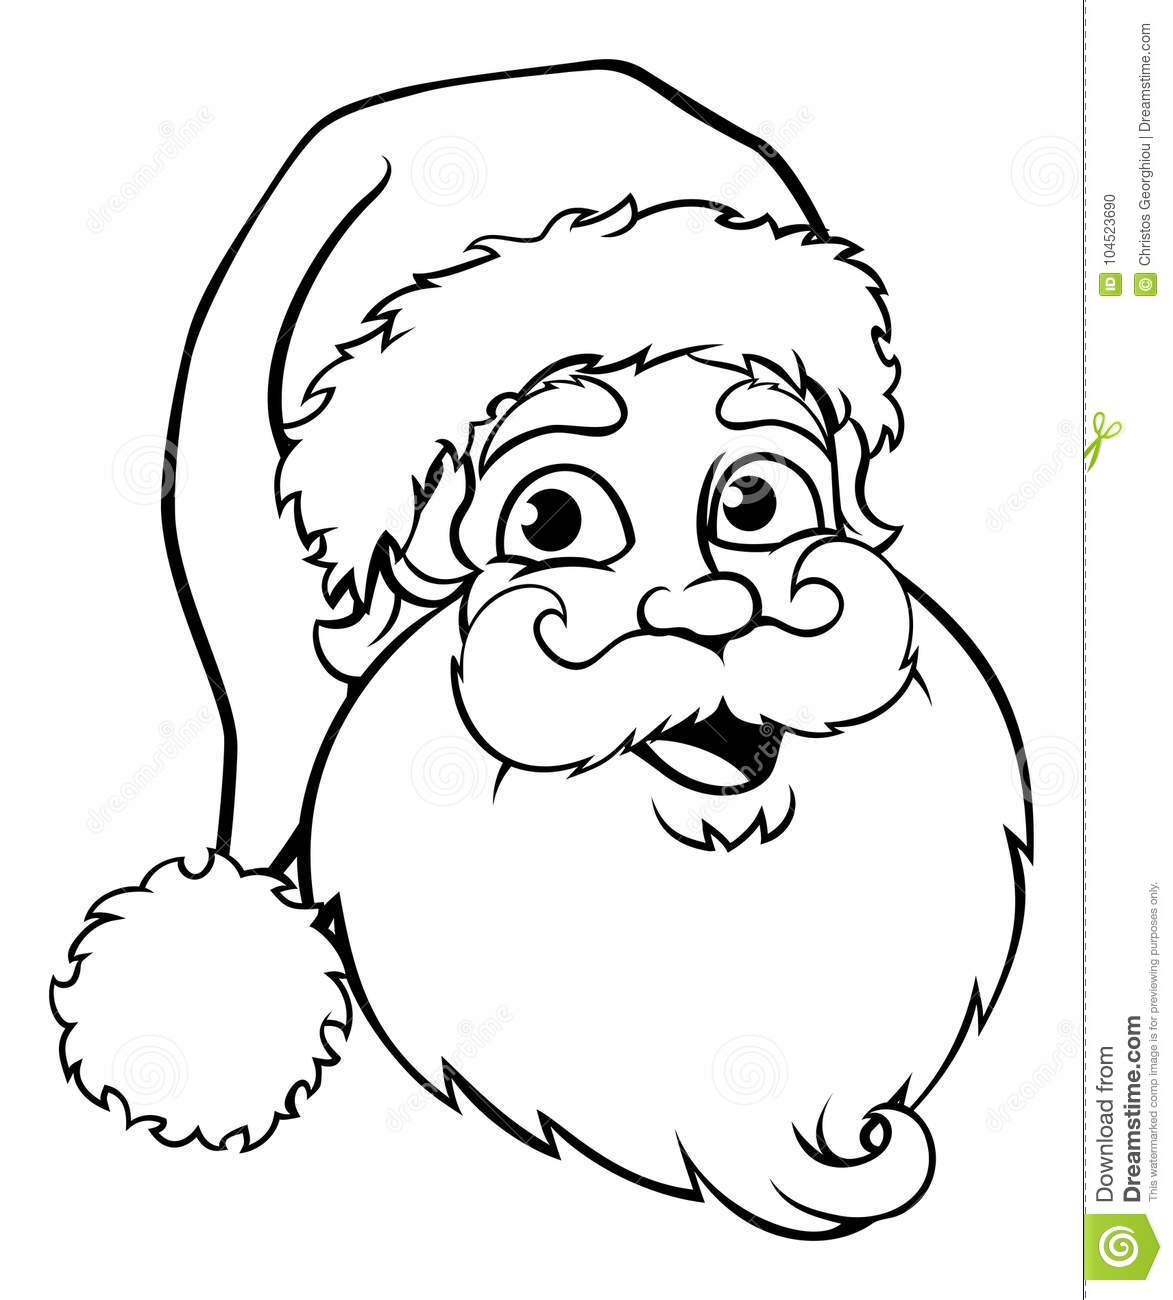 Santa Claus Outline stock vector. Illustration of happy